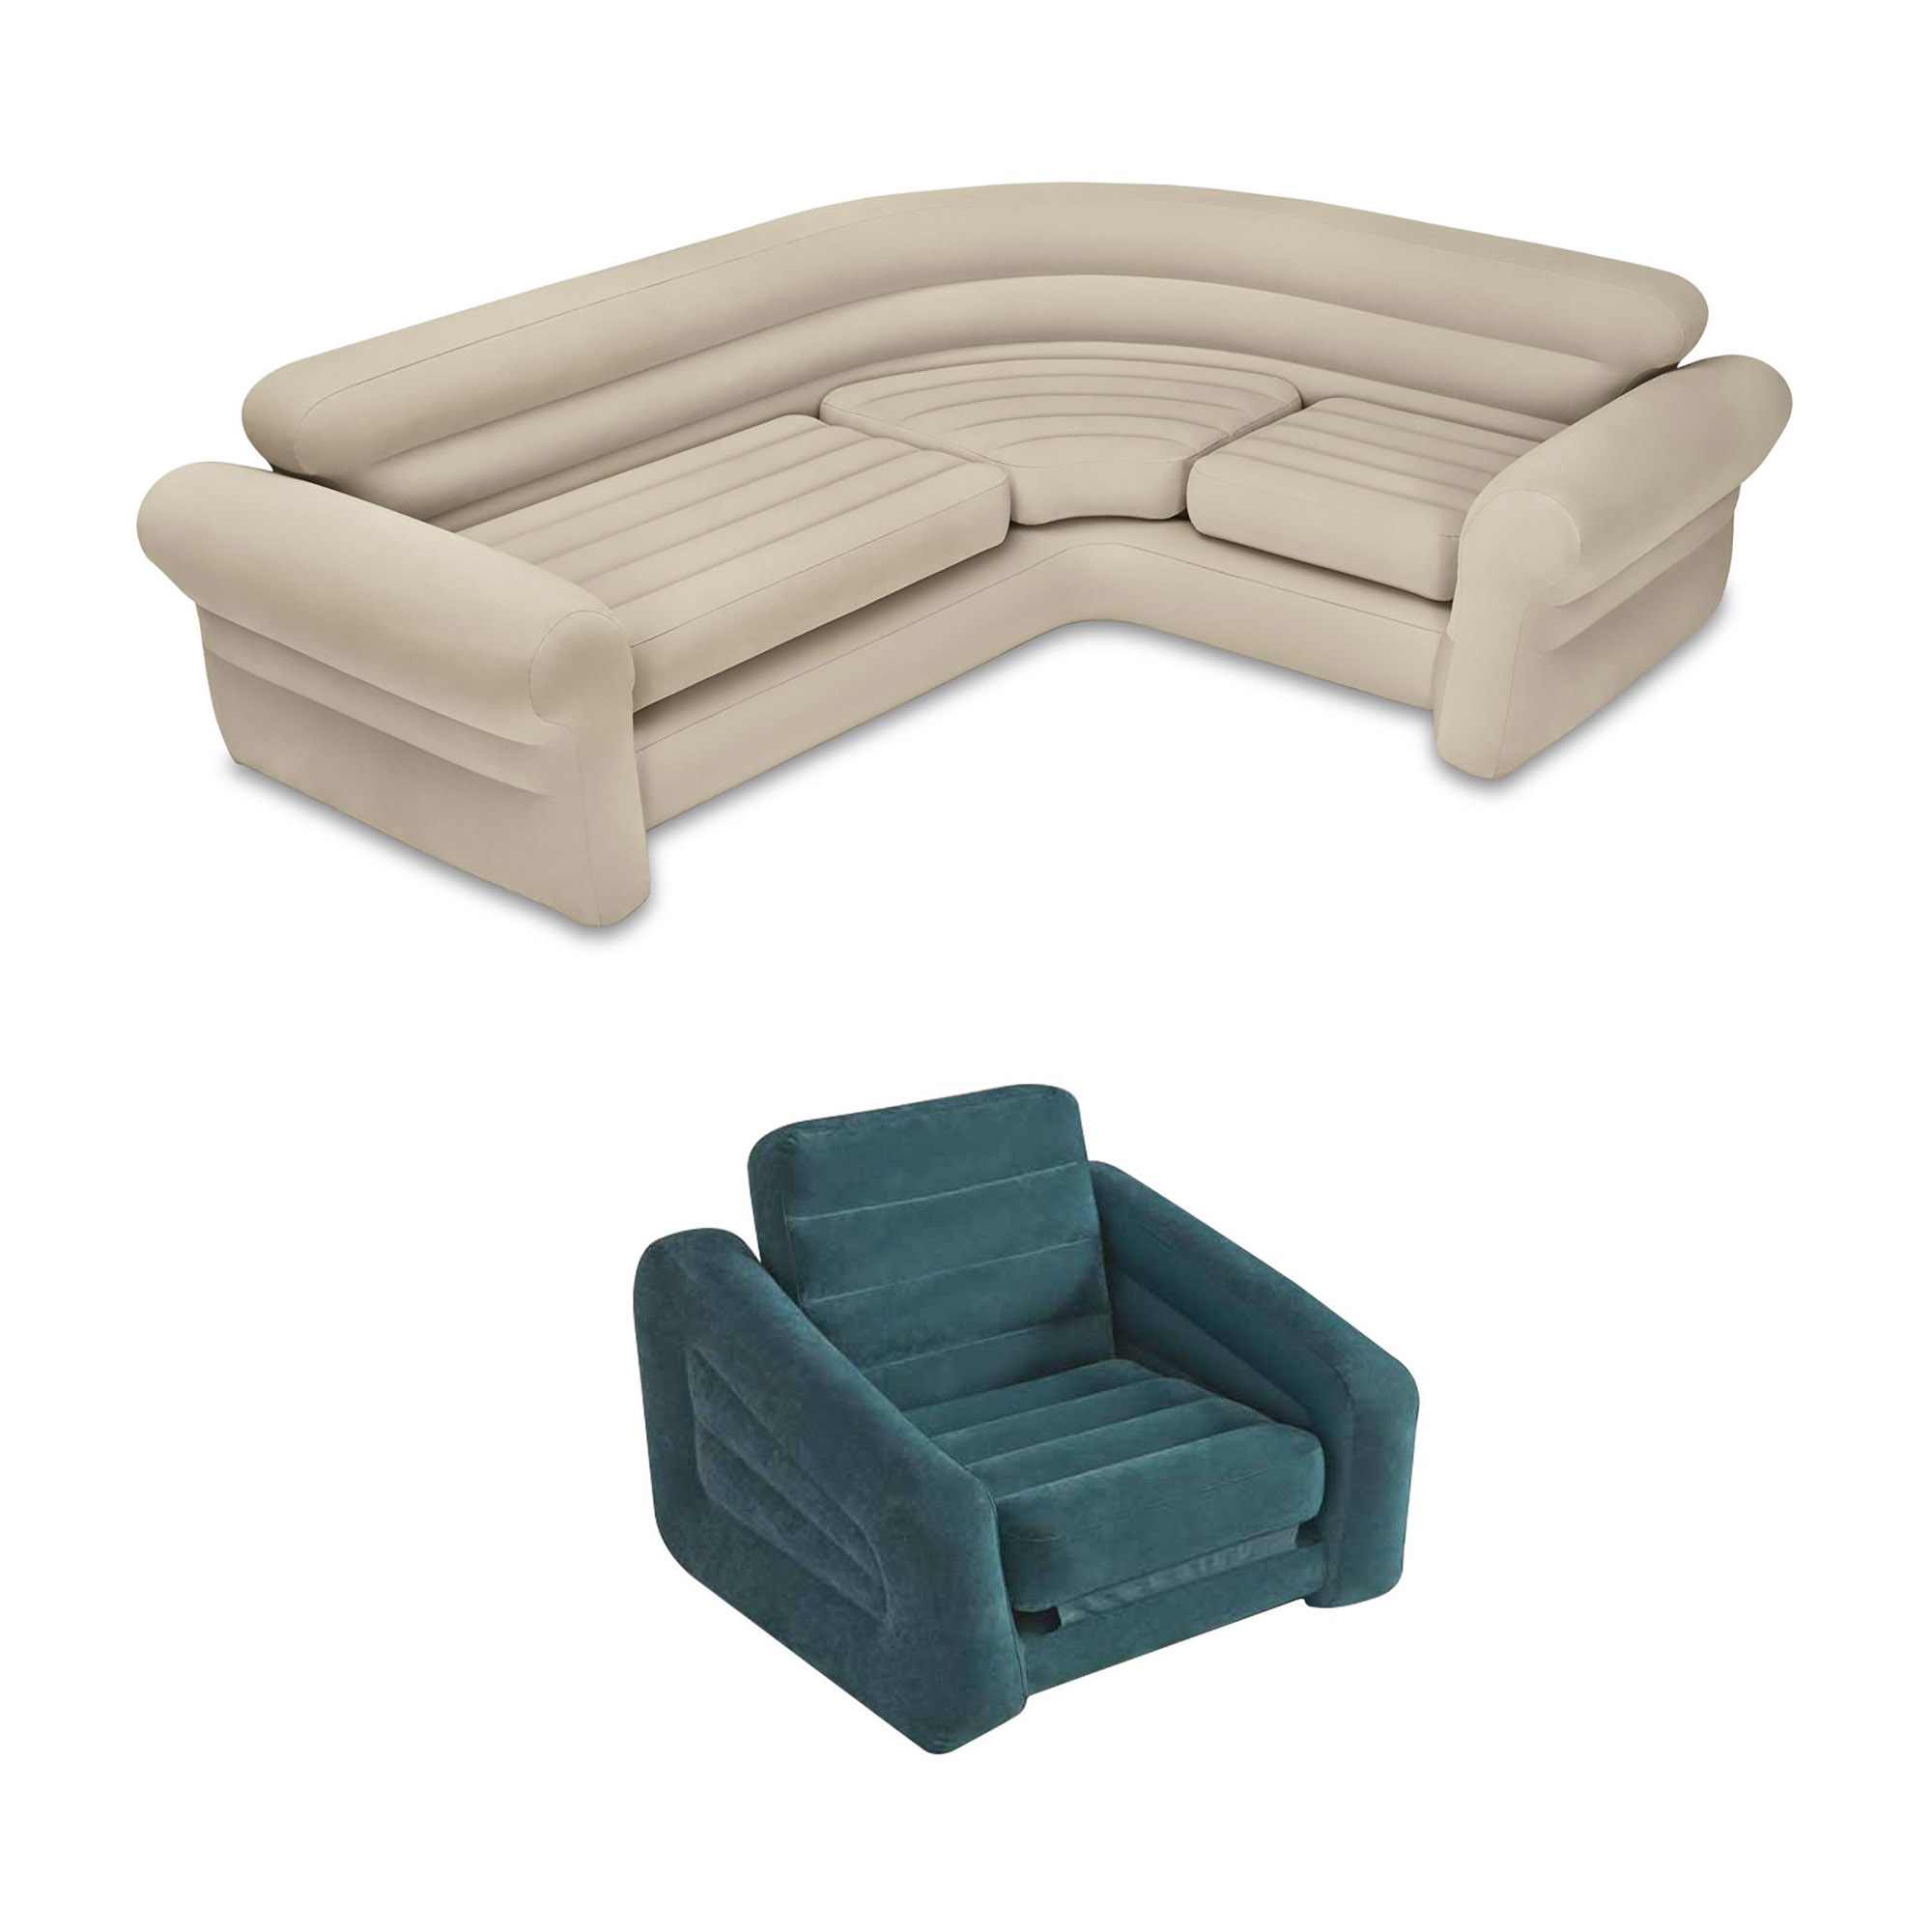 Intex Inflatable Corner Sectional Sofa Inflatable Air Mattress